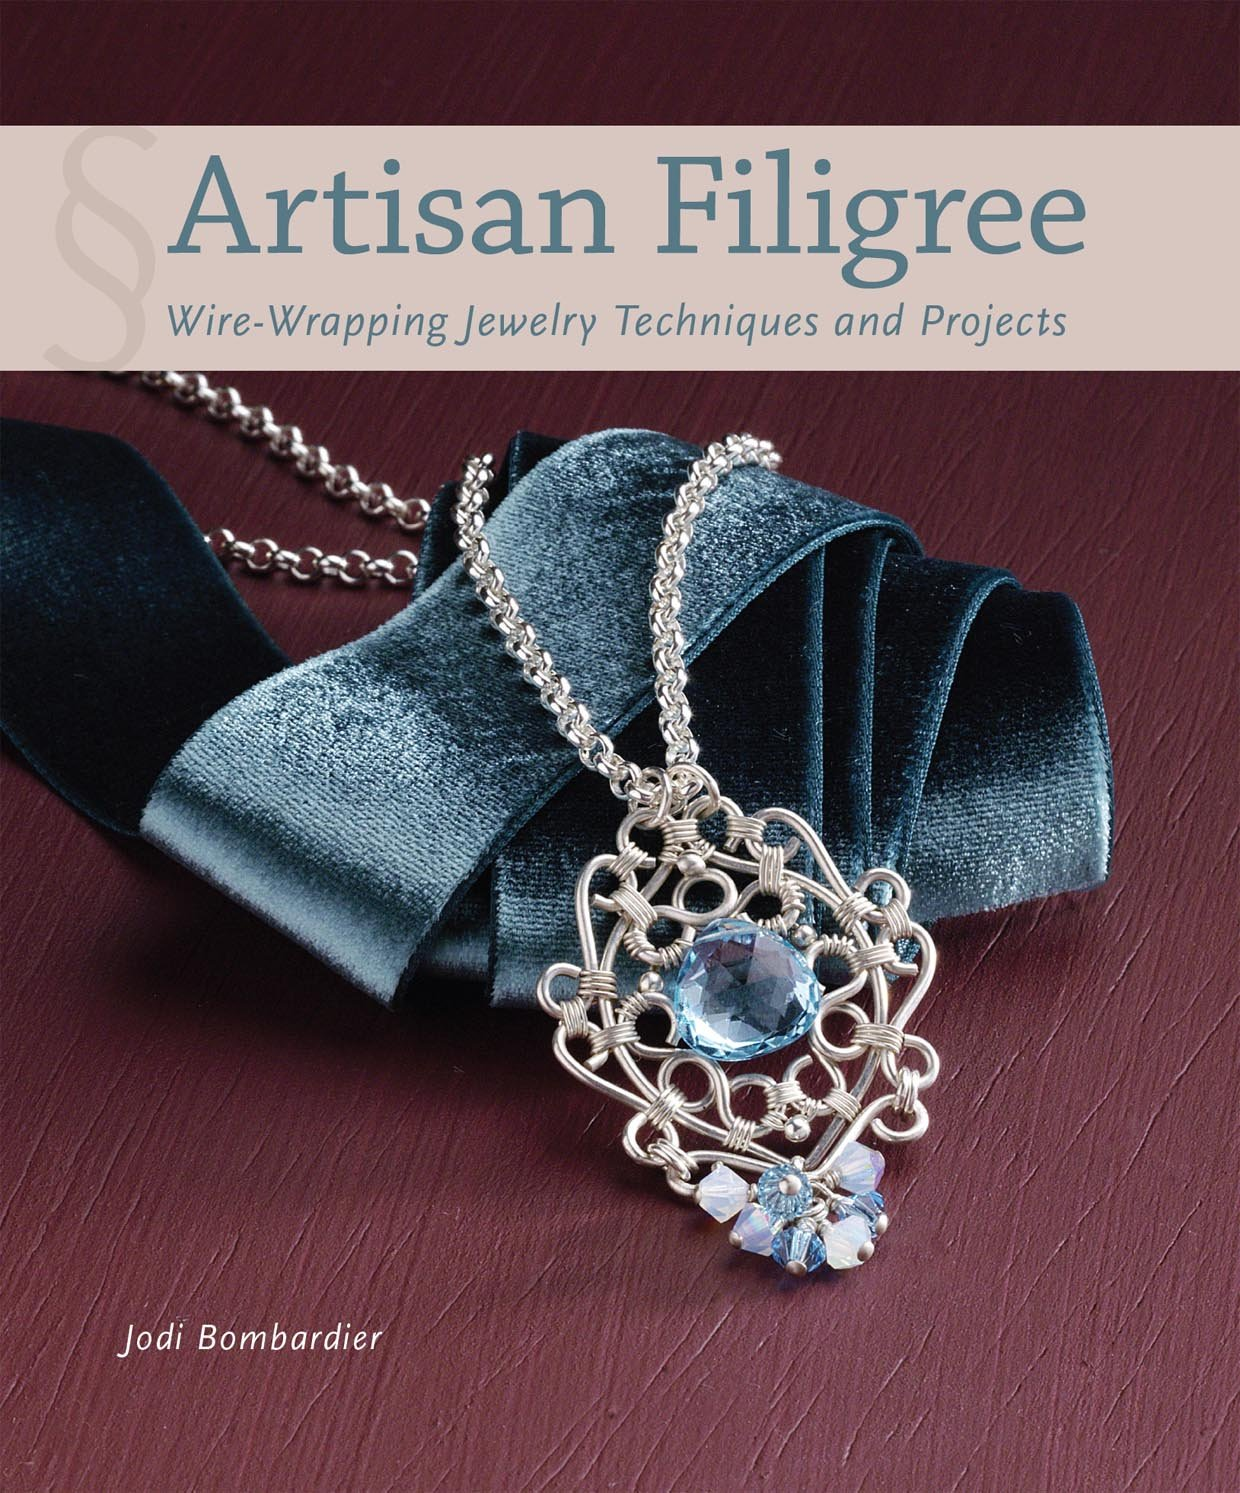 Artisan Filigree: Wire-Wrapping Jewelry Techniques and Projects by Interweave